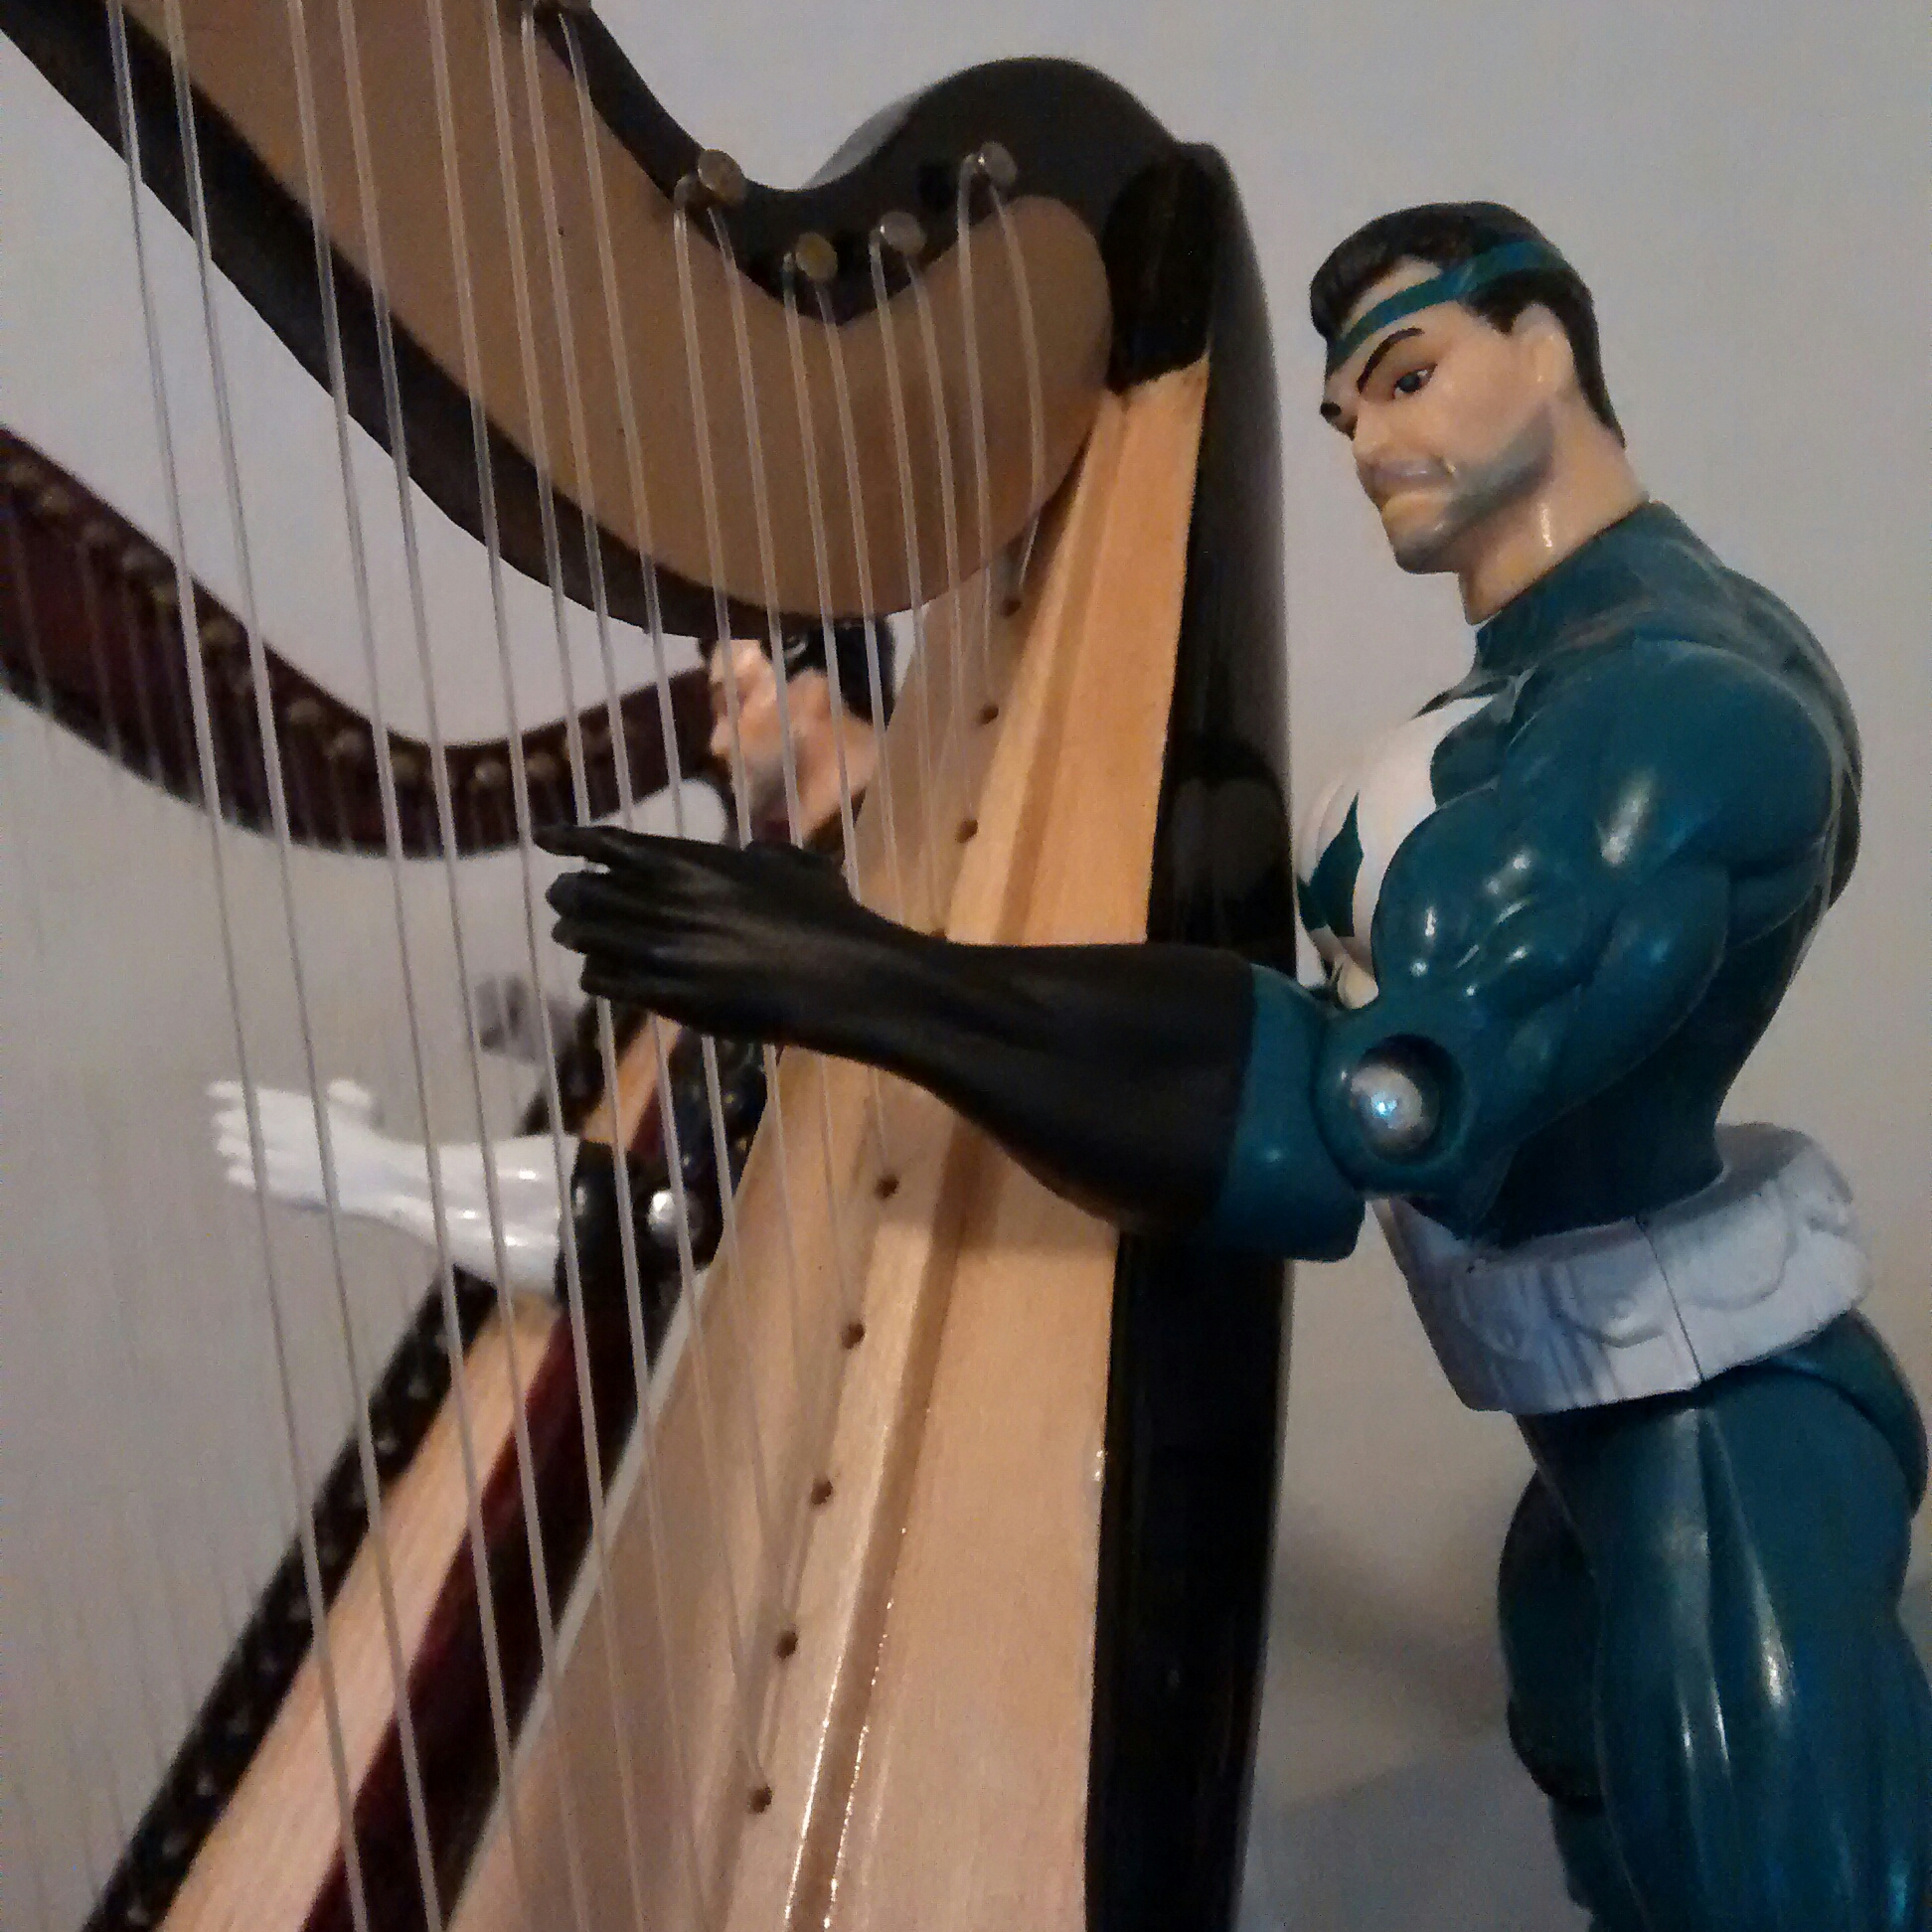 More Harp enjoyment from The Punisher.